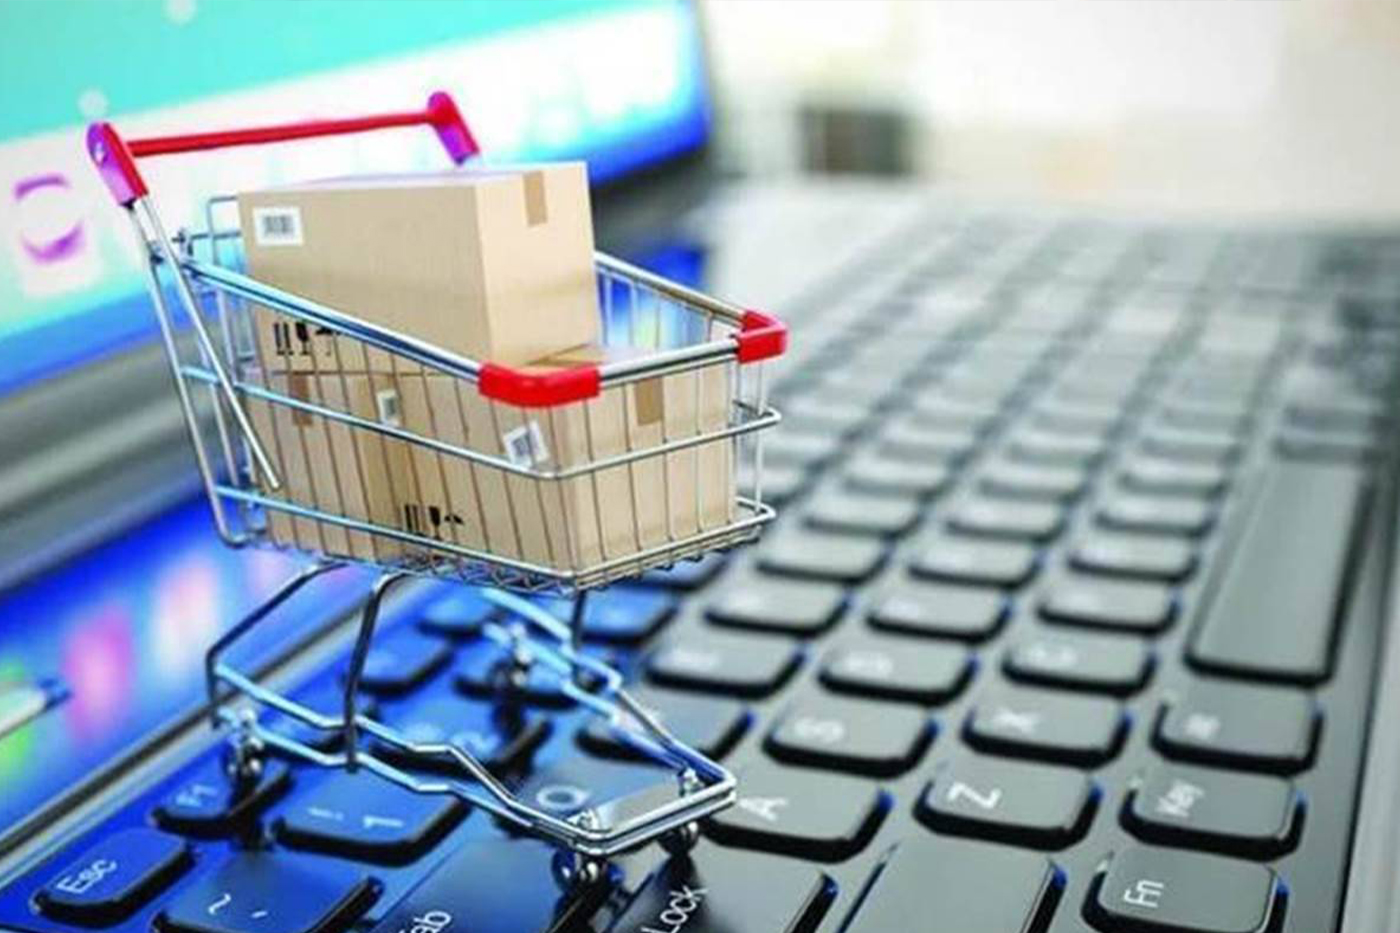 Consumer buying patterns shift amidst the pandemic gloom